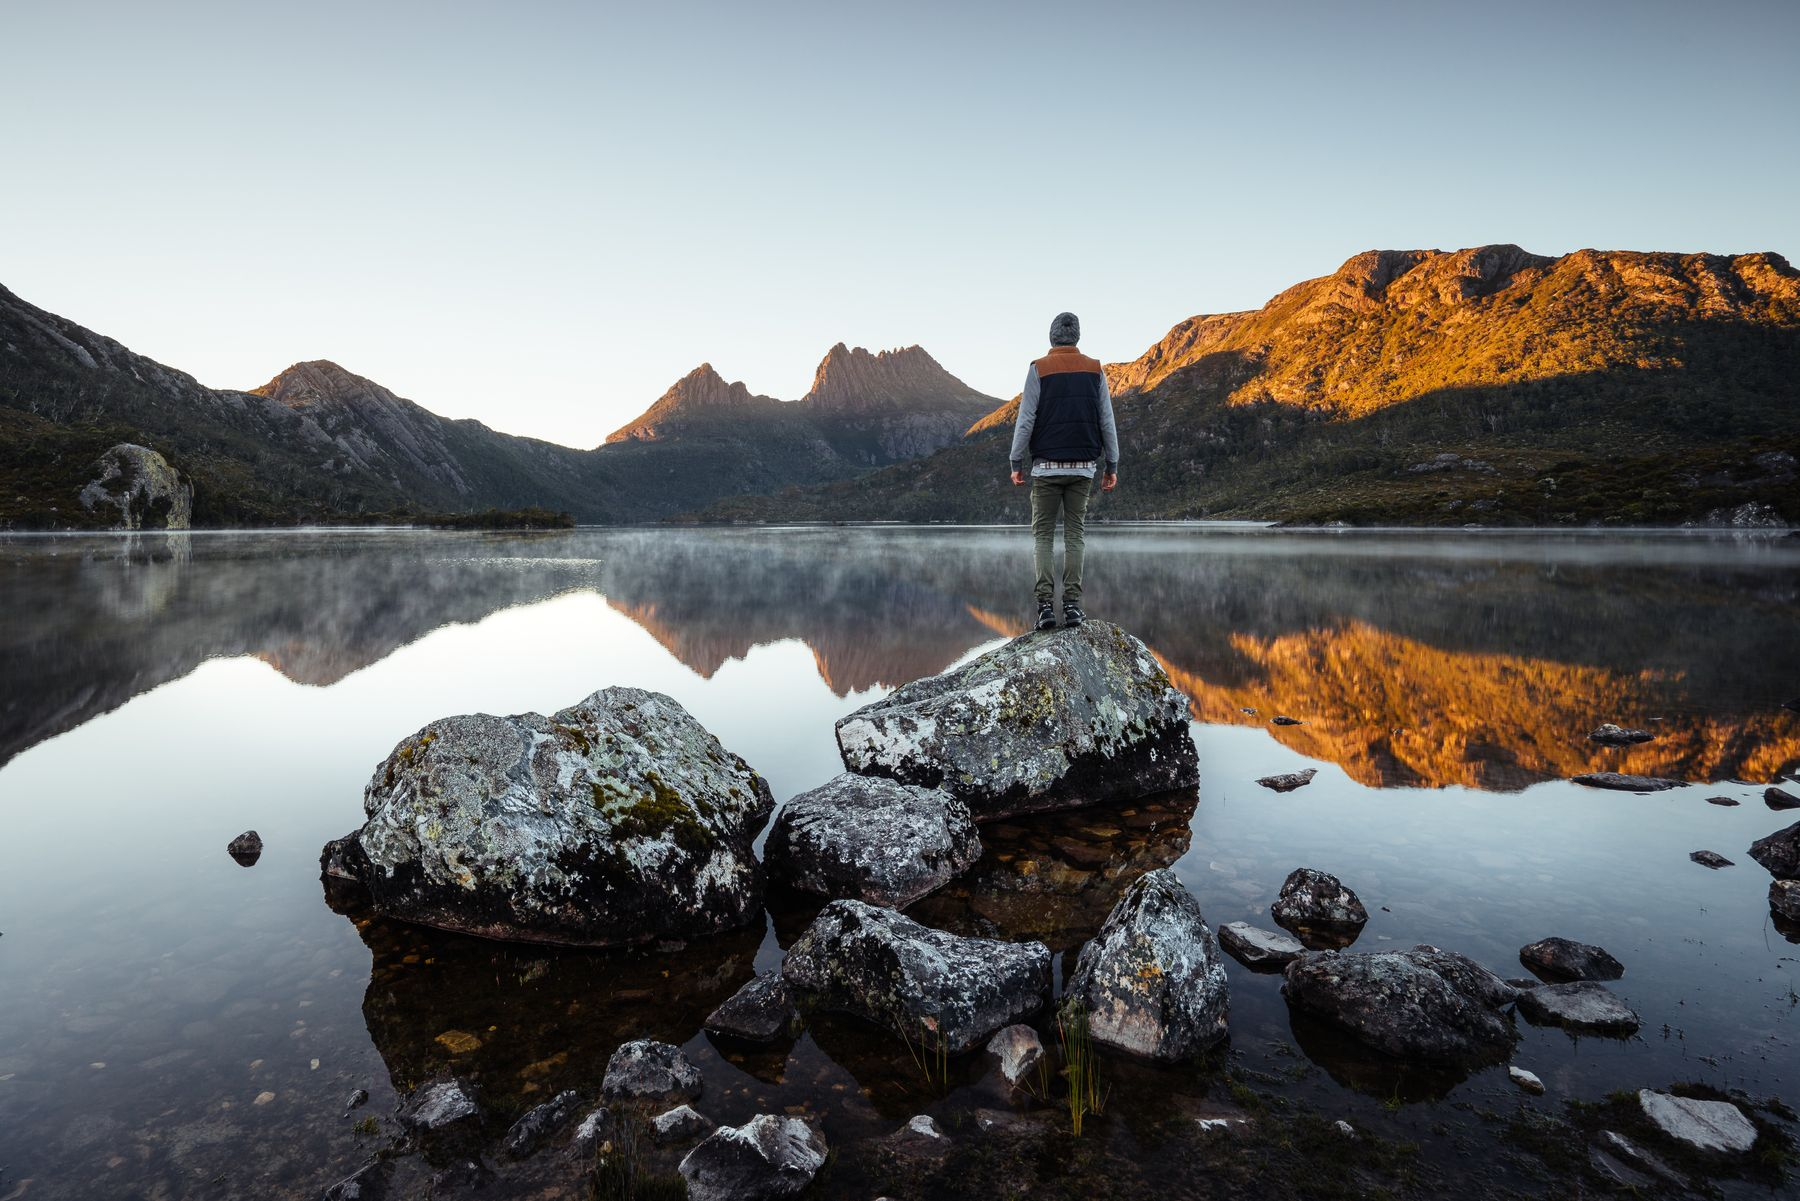 Cradle Mountain, a part of the Tasmanian Wilderness World Heritage Area